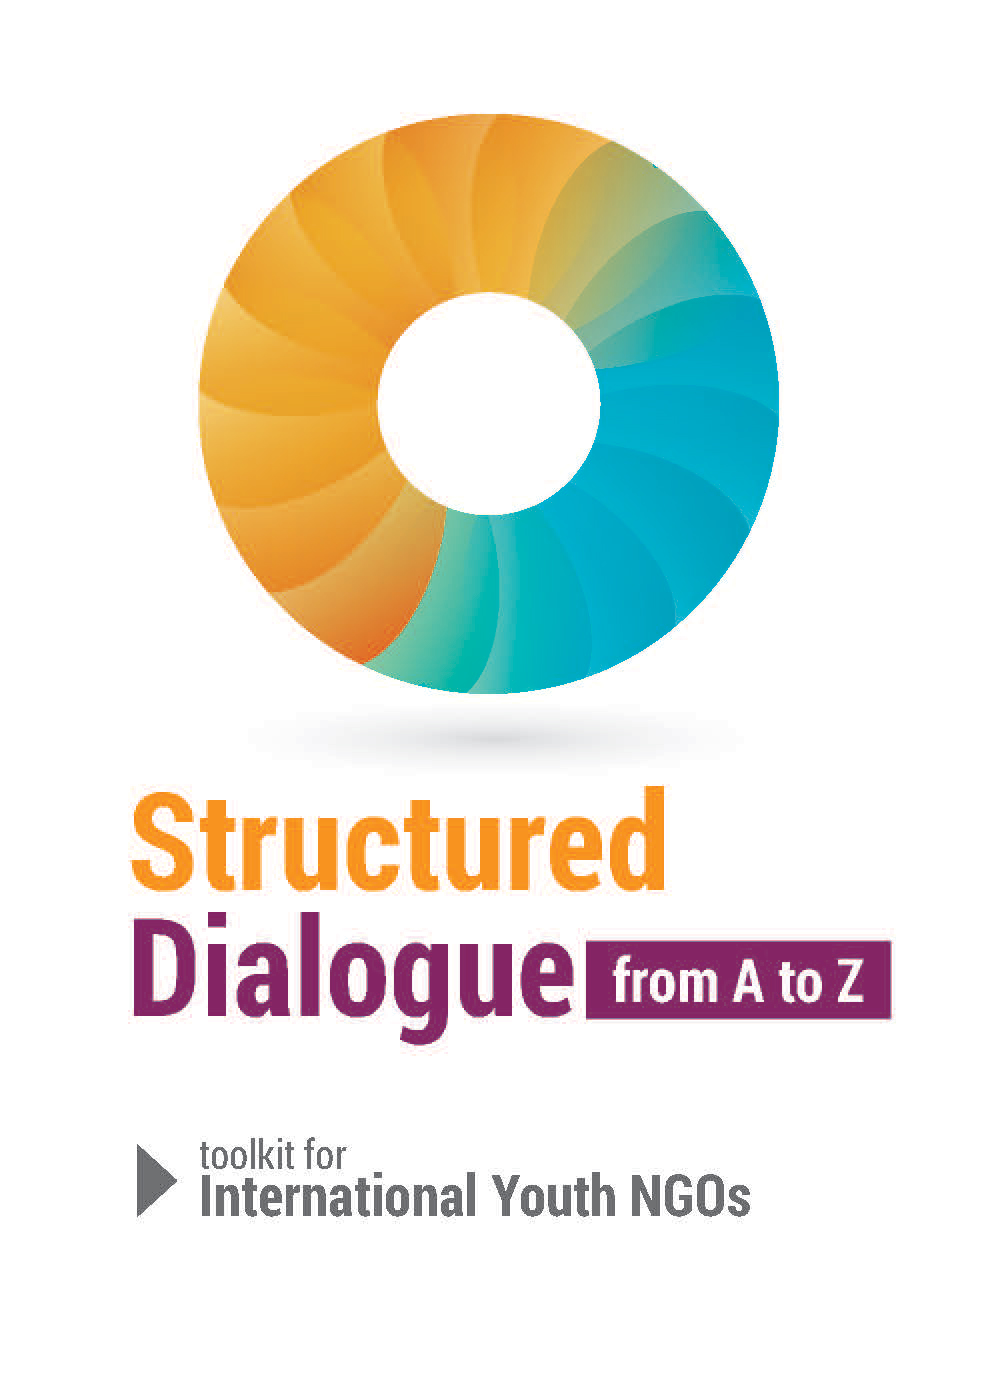 Structured Dialogue from A to Z